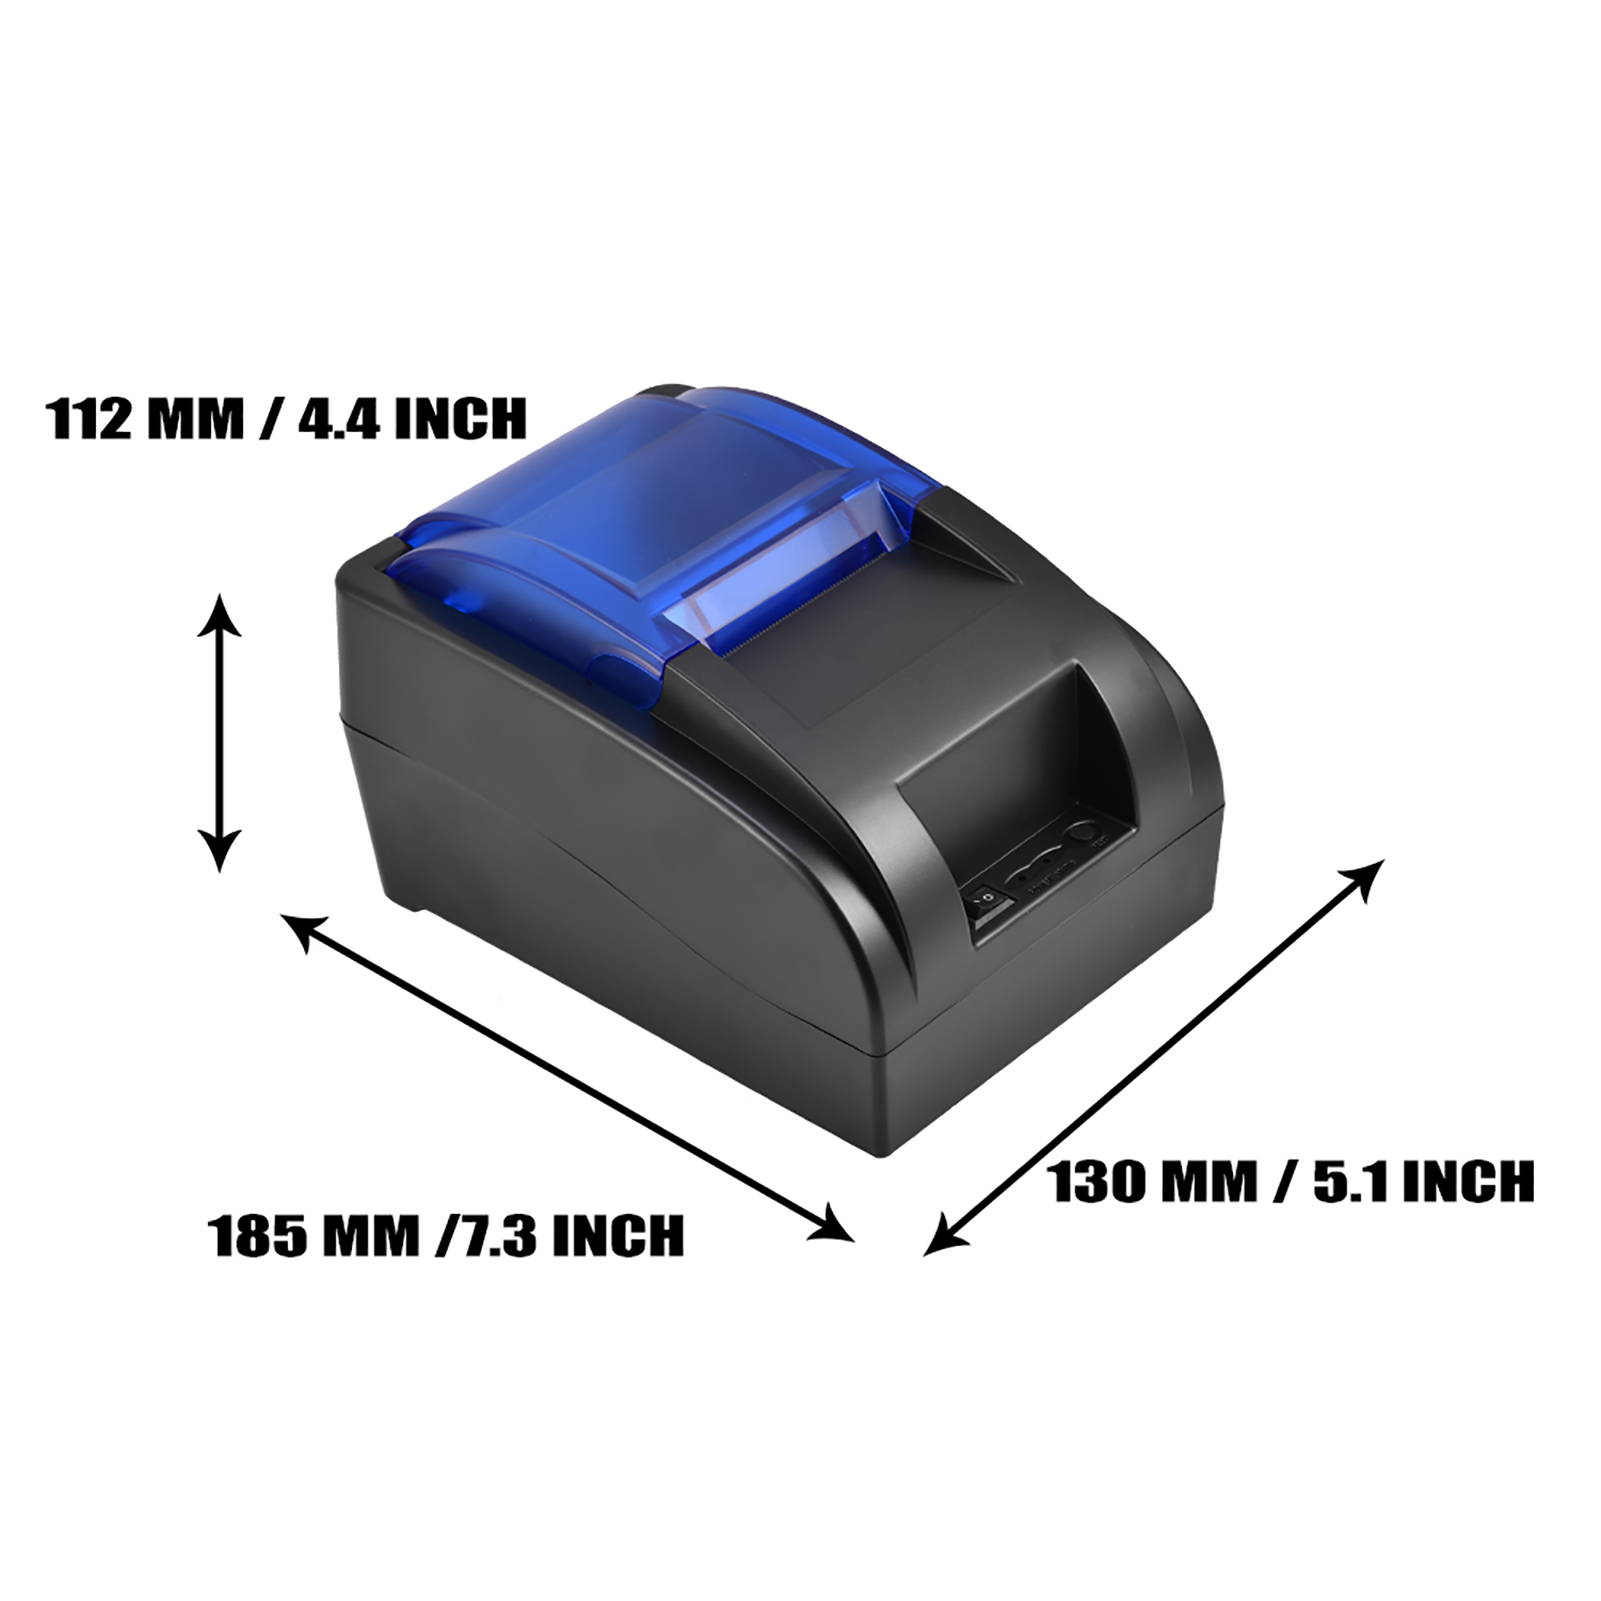 Details about 58mm Mini USB Wired Thermal Printer Ticket Receipt Label  Printing POS ESC CO